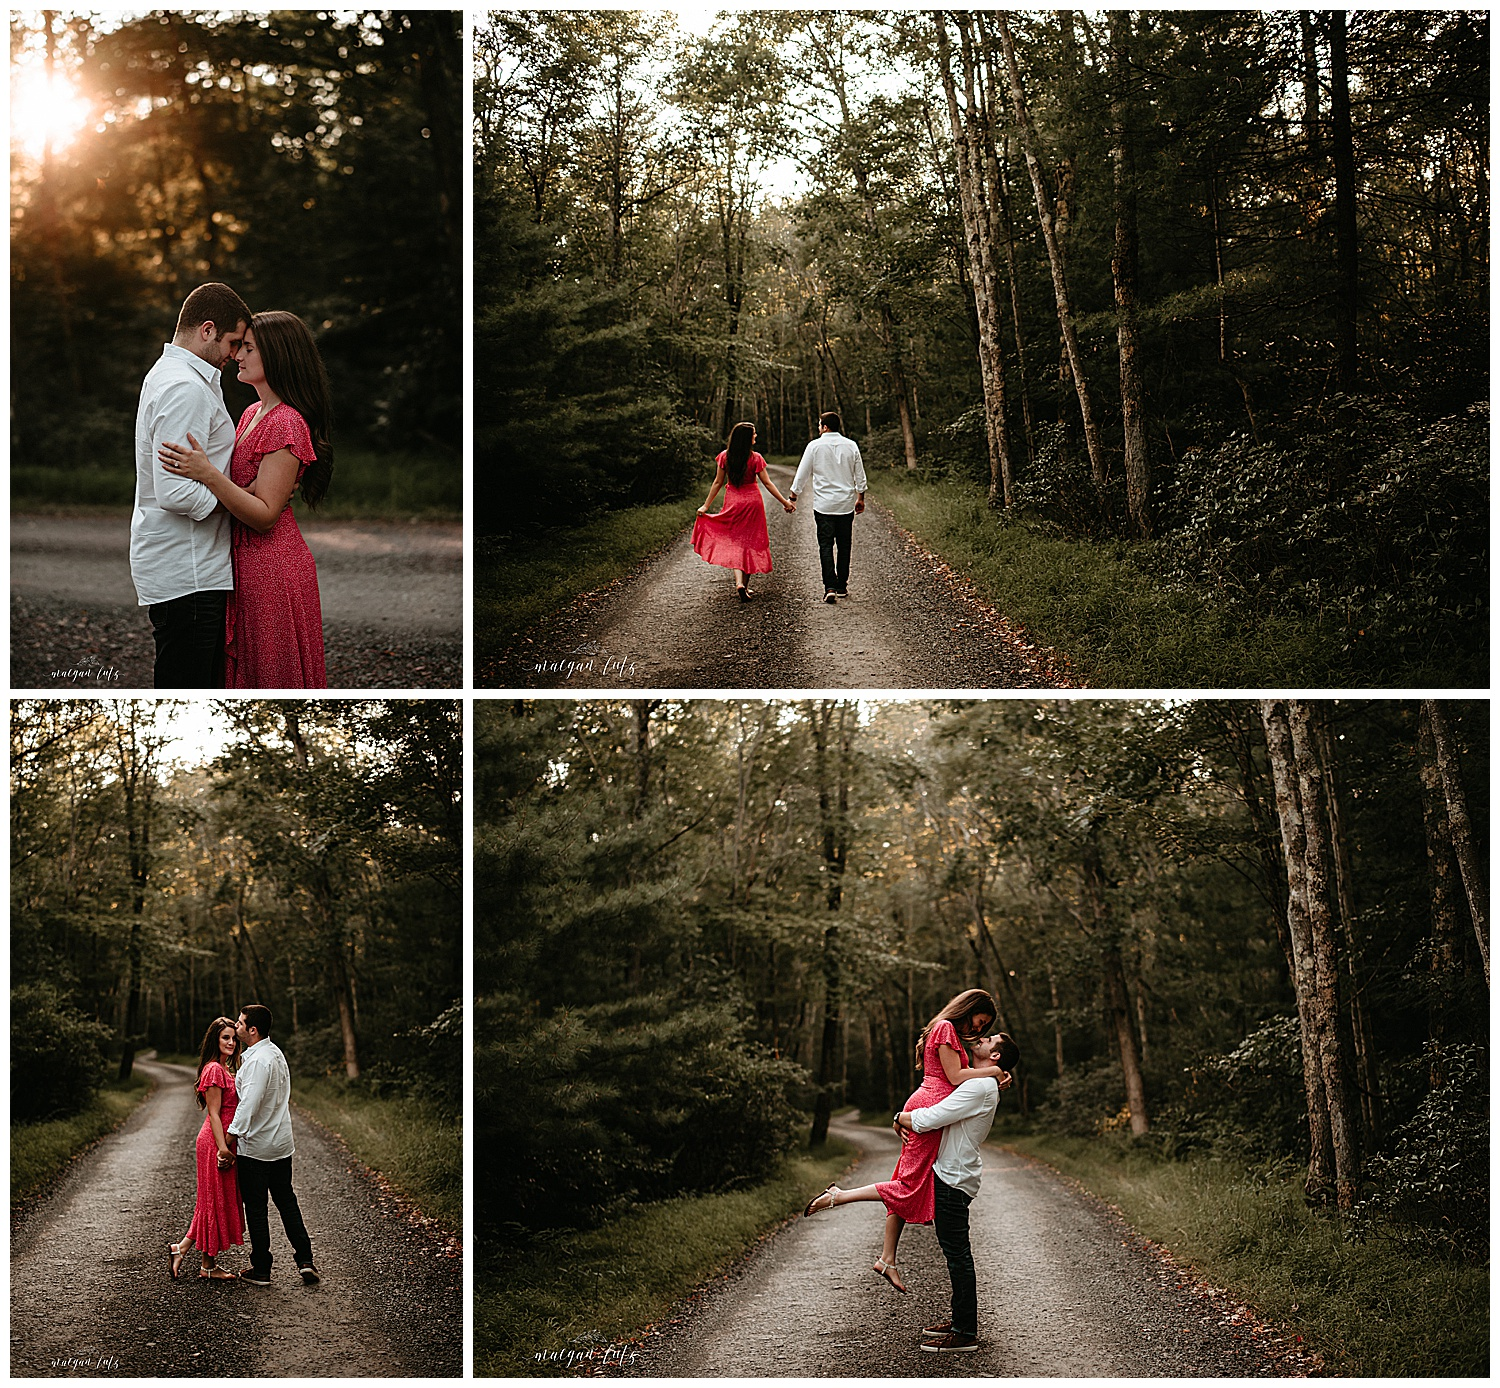 NEPA-Mount-Pocono-Lehigh-Valley-Wedding-Engagement-photographer-at-Hickory-Run-State-Park-Whitehaven-PA_0011.jpg